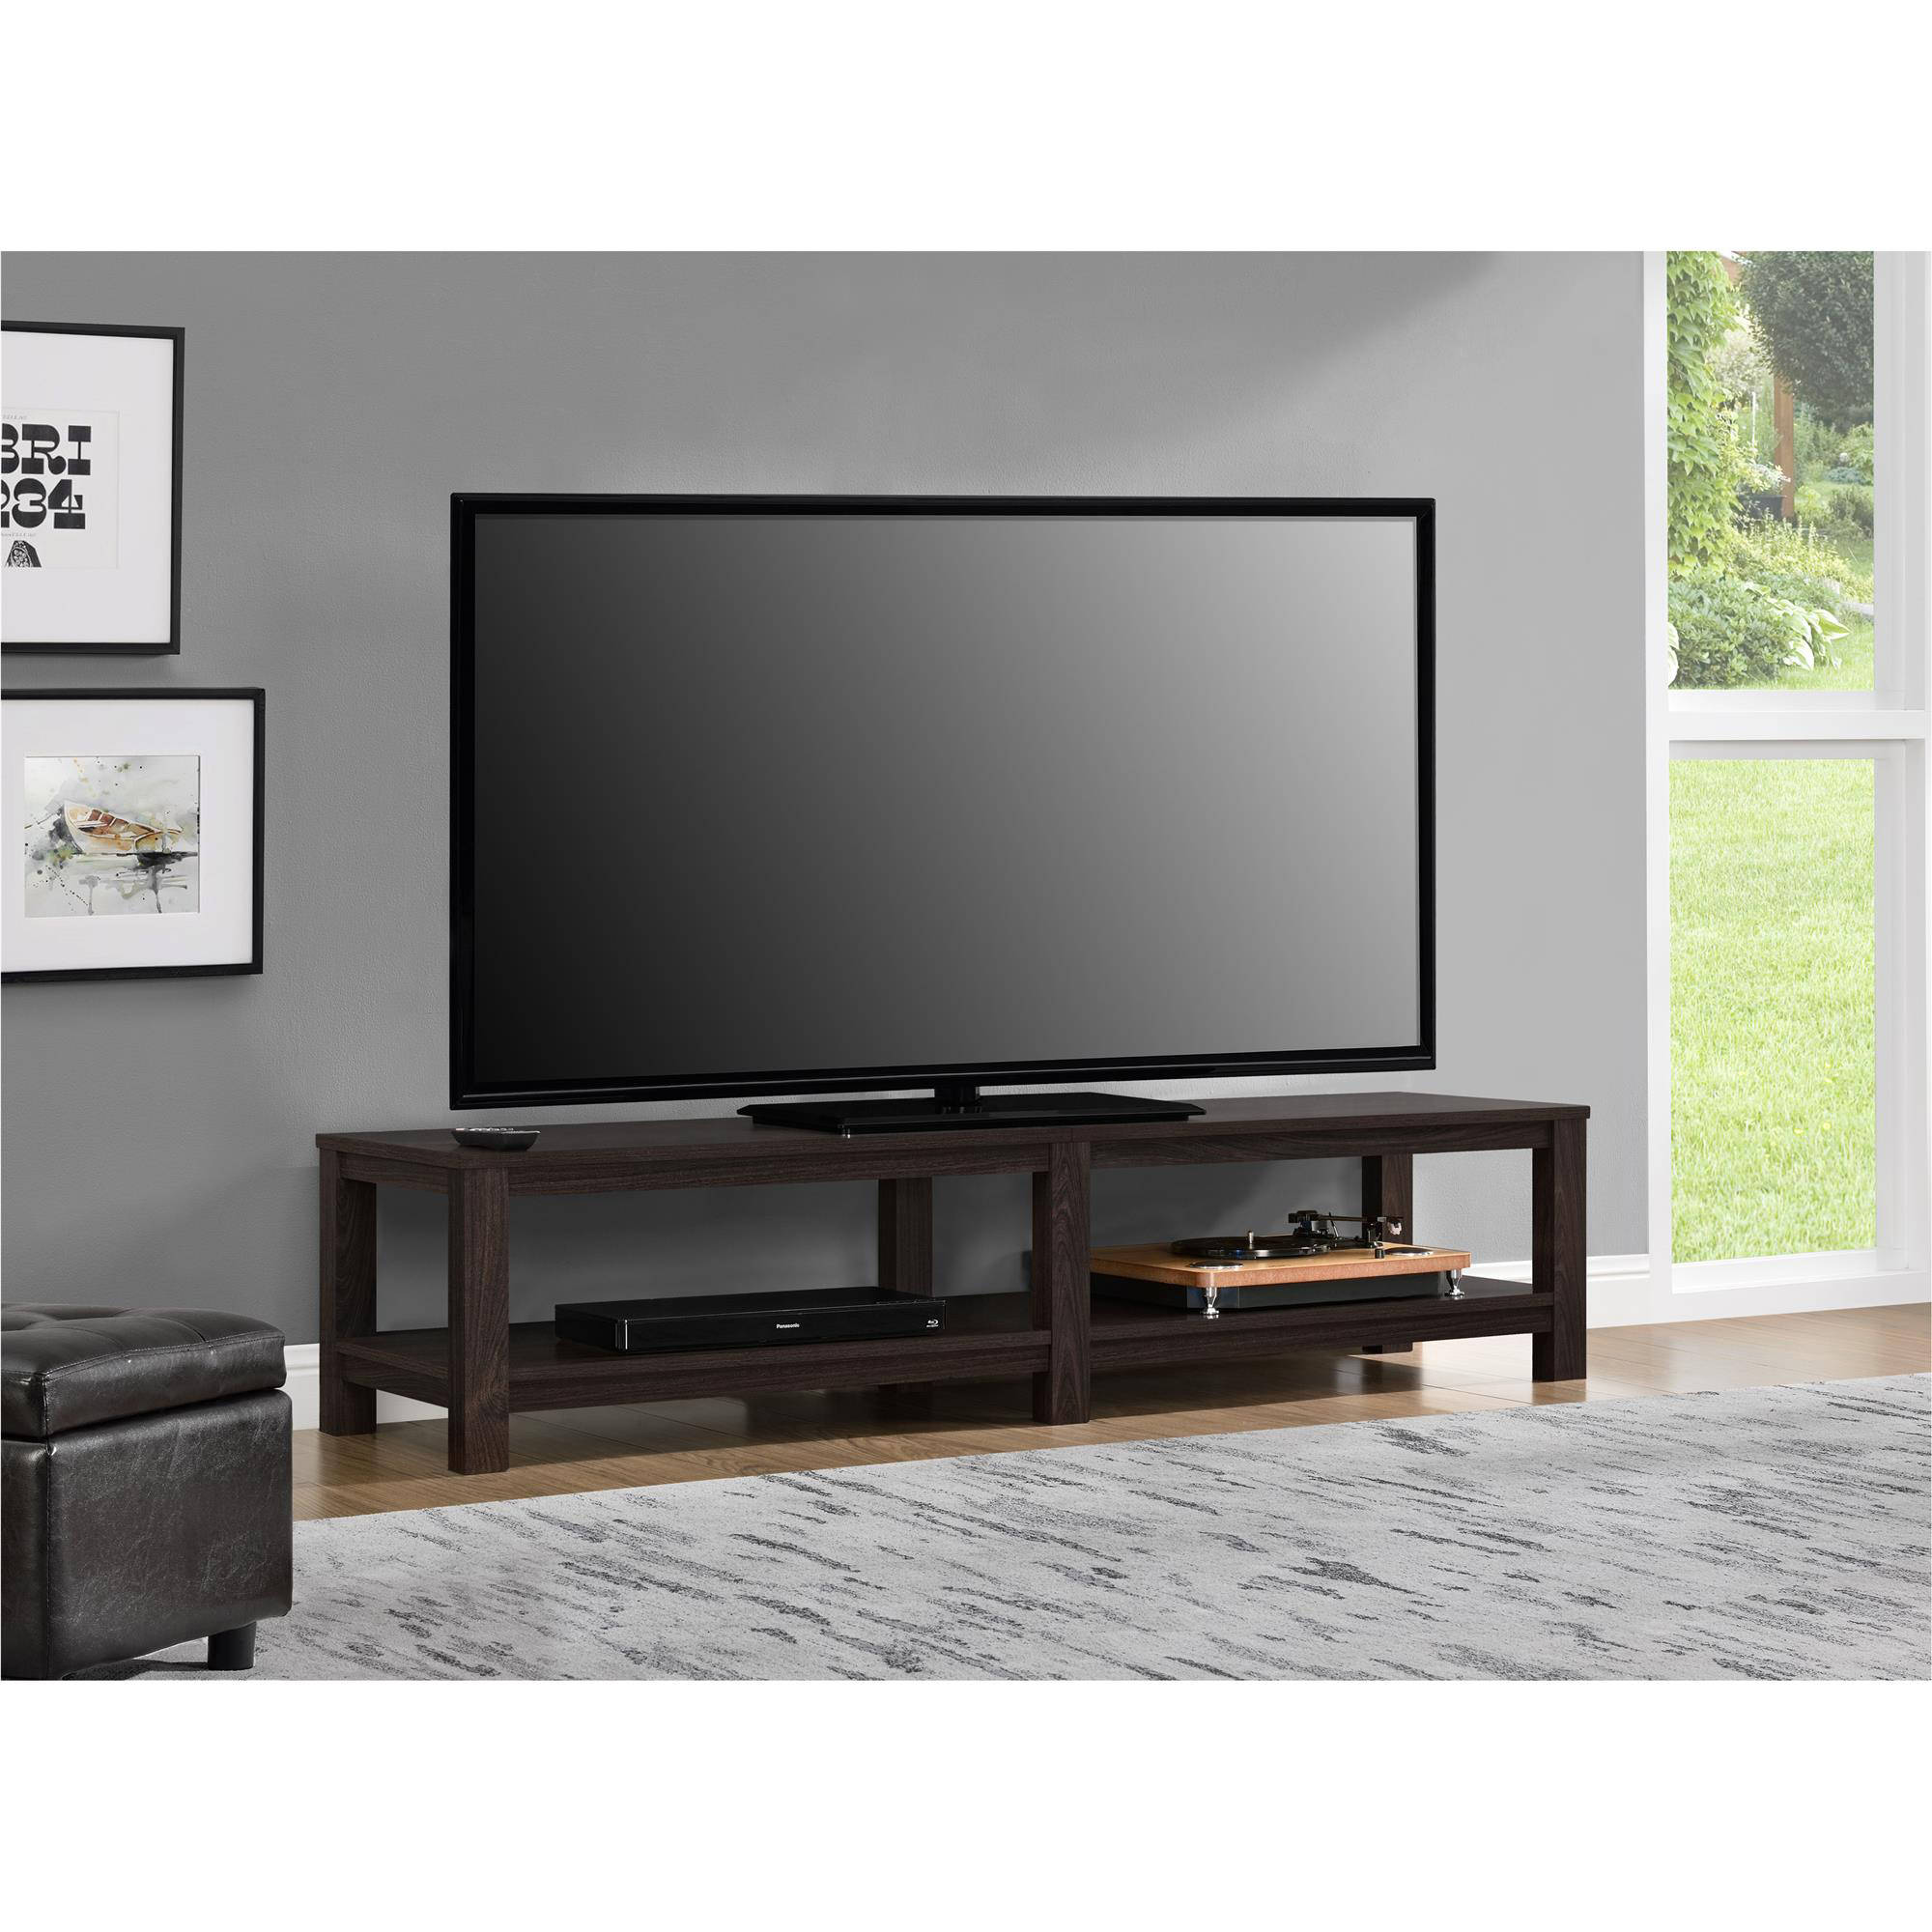 65 Inch Tv Media Entertainment Stand Console Table Mount Storage Modern Profile